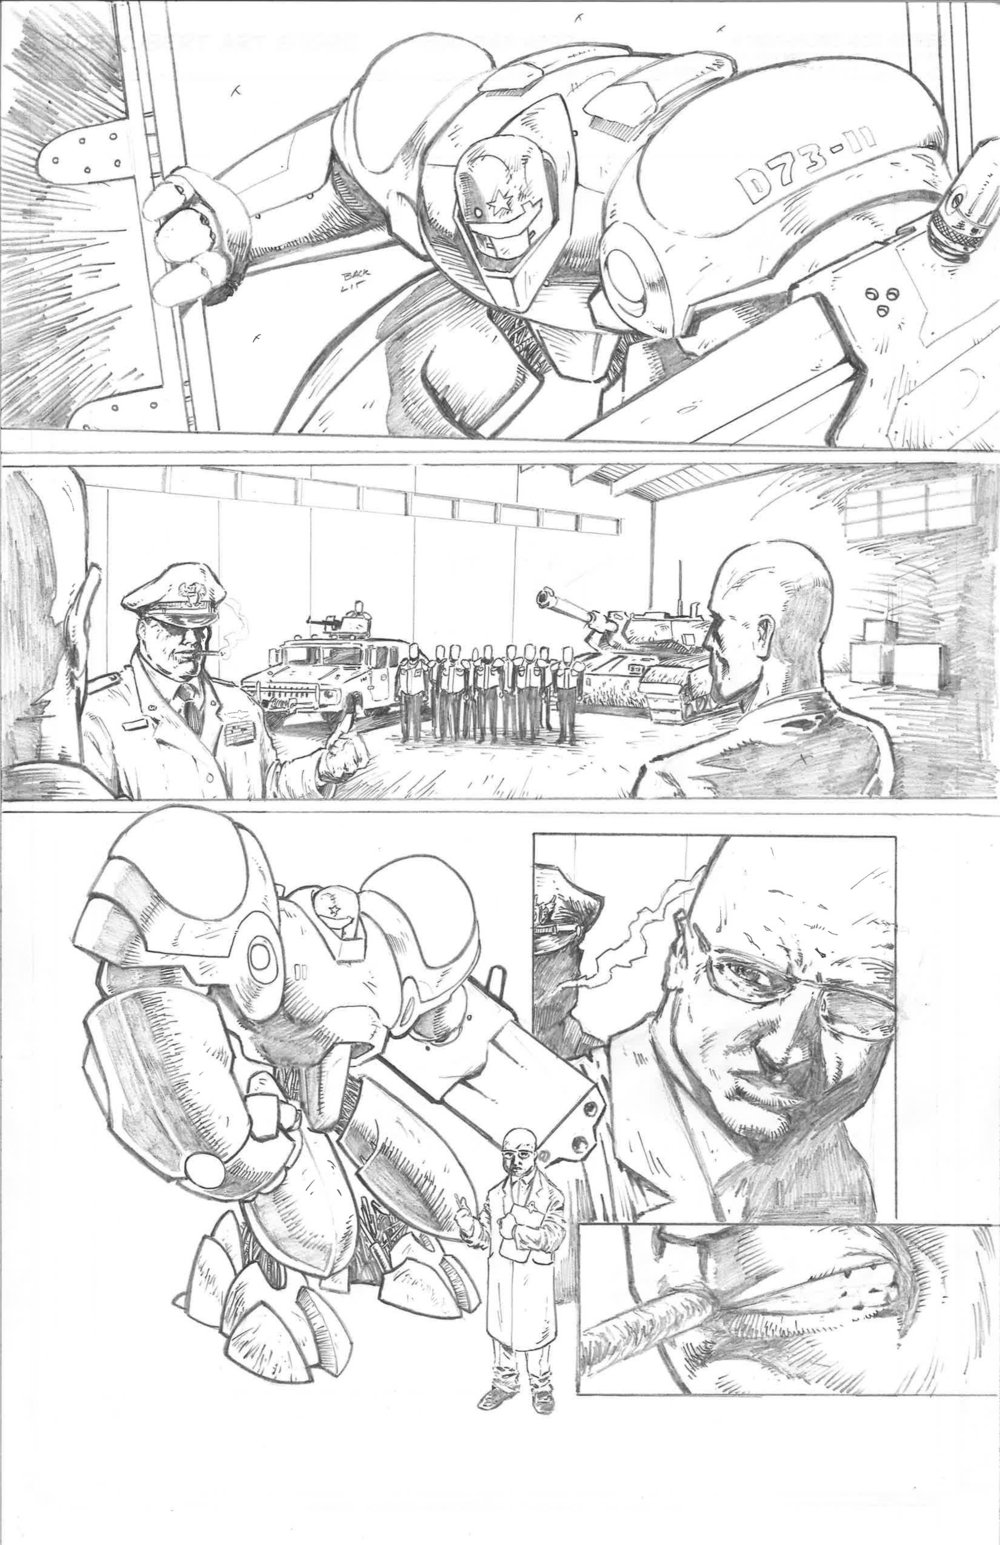 penciled pages_Page_02.jpg